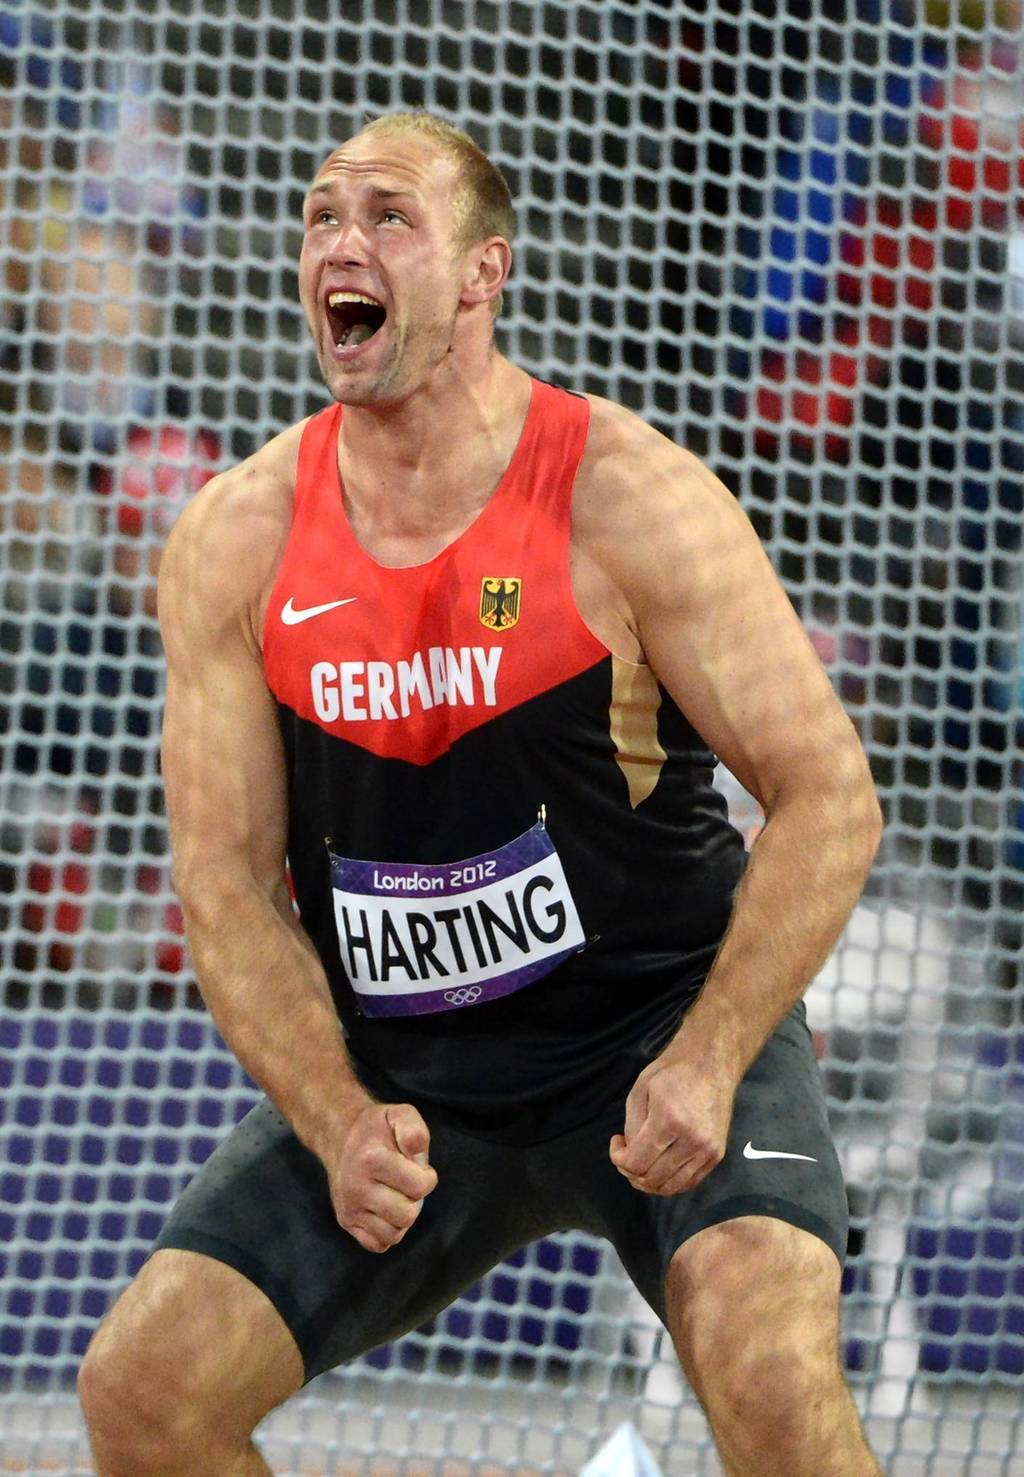 Germany's Robert Harting reacts in the men's discus throw final.